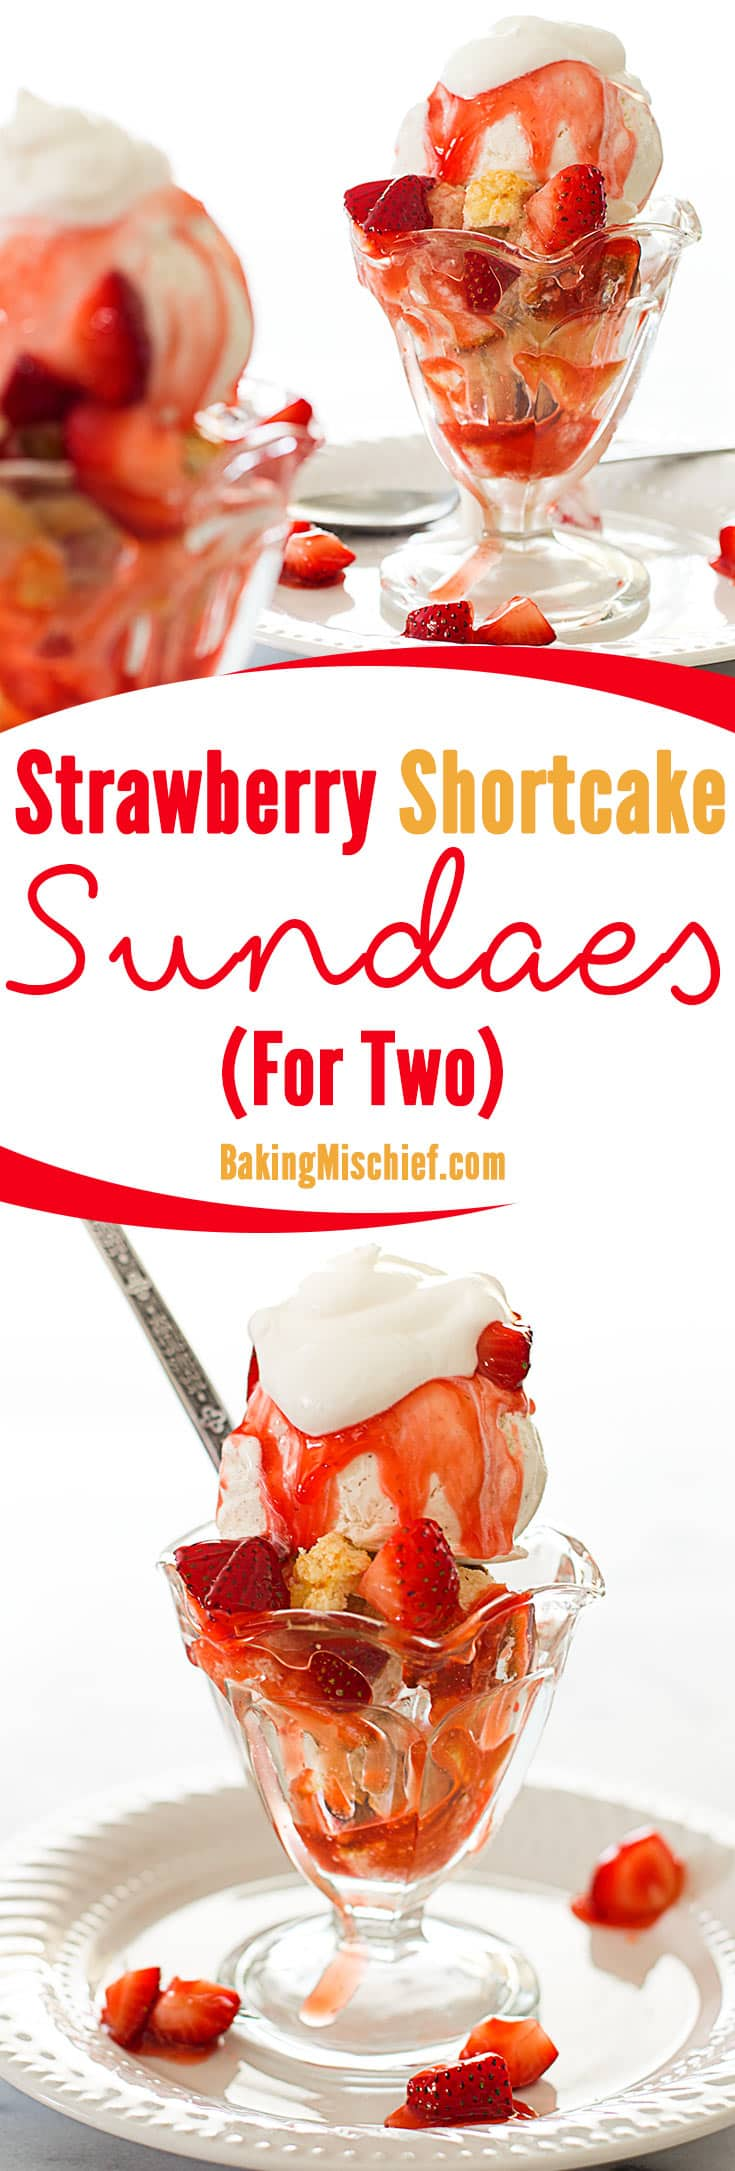 Strawberry shortcake sundaes for two, crumbly buttermilk shortcake with vanilla ice cream and an easy and delicious homemade strawberry ice cream topping. This is my very favorite ice cream sundae! Recipe includes nutritional information. From BakingMischief.com